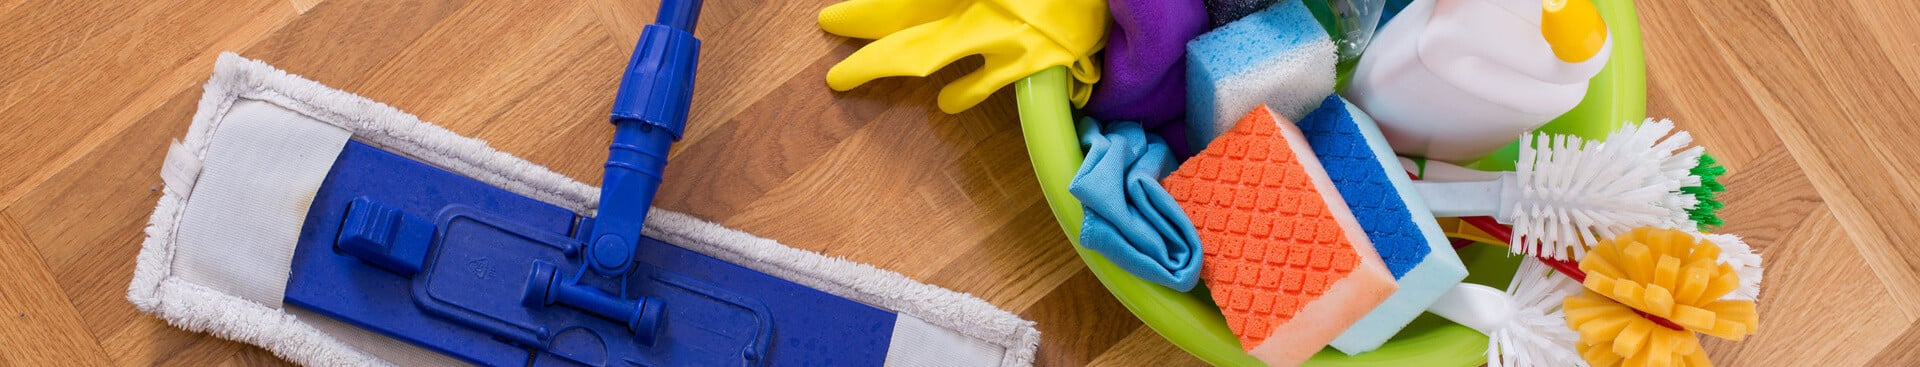 Mop and cleaning supplies